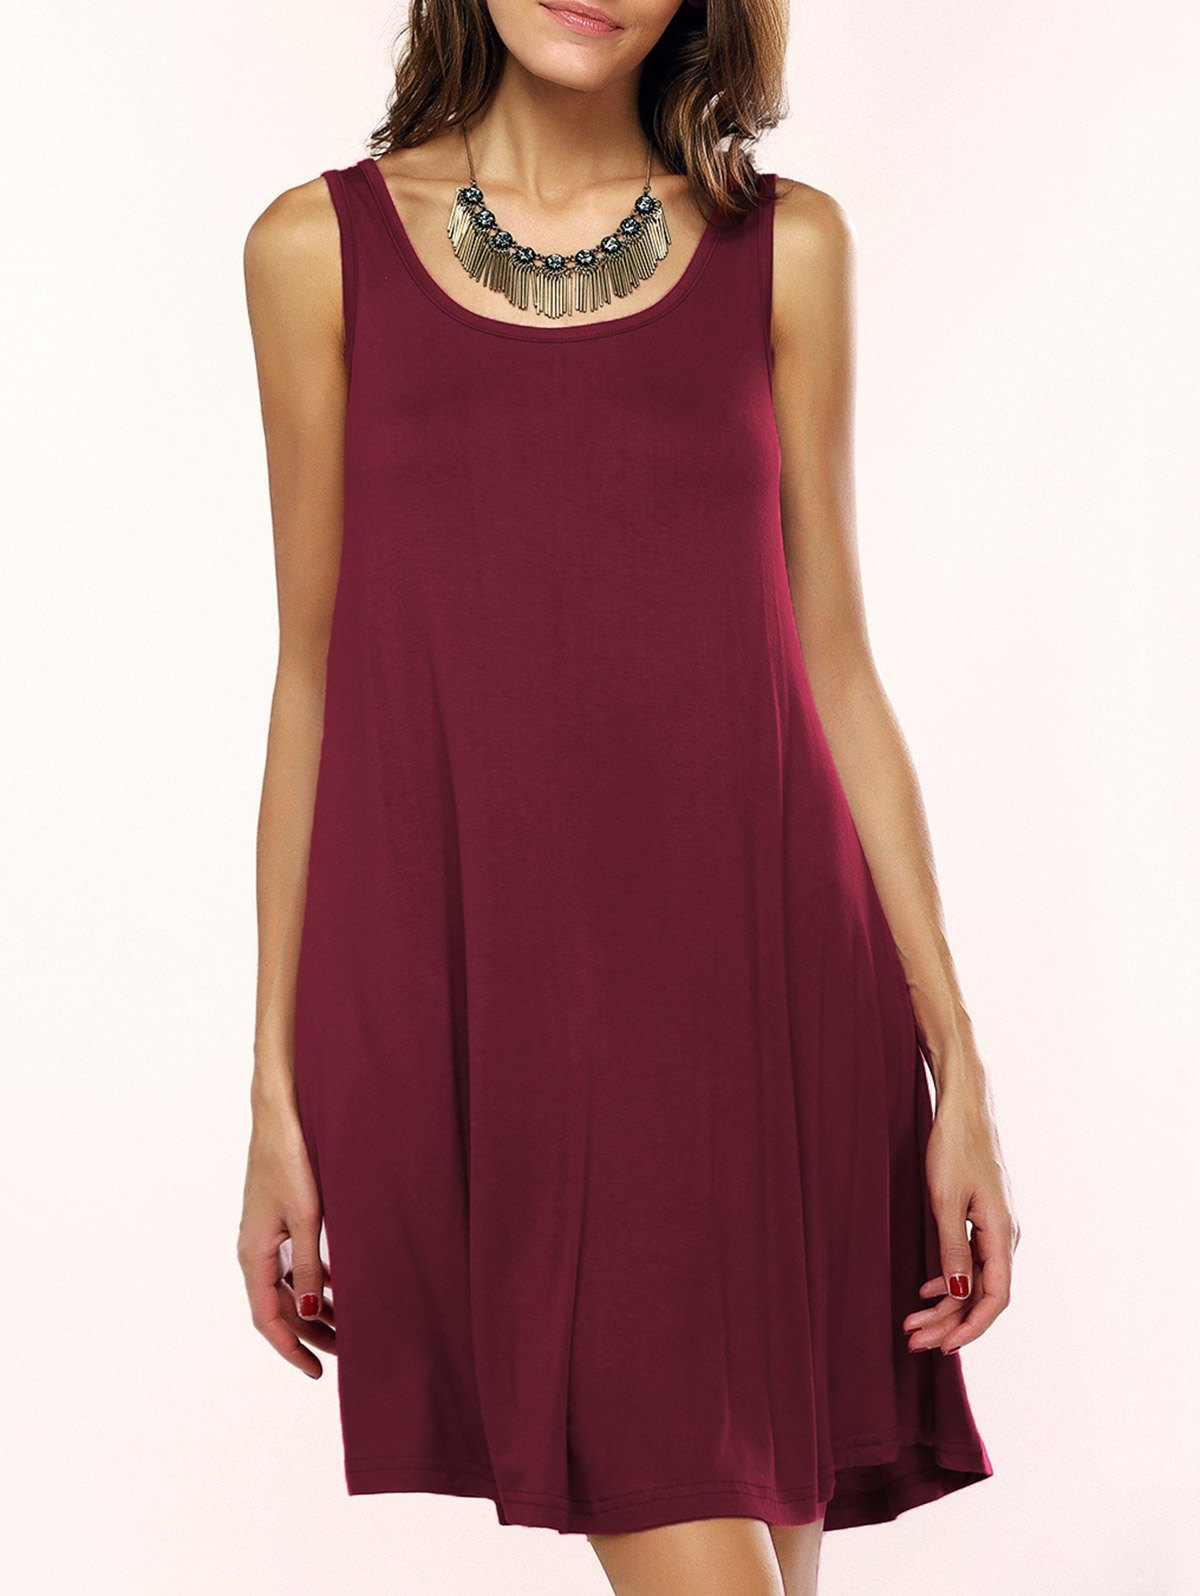 Tank A Line Casual Everyday DressWOMEN<br><br>Size: XL; Color: WINE RED; Style: Casual; Material: Nylon,Polyester,Spandex; Silhouette: A-Line; Dresses Length: Mini; Neckline: Scoop Neck; Sleeve Length: Sleeveless; Pattern Type: Solid; With Belt: No; Season: Summer; Weight: 0.210kg; Package Contents: 1 x Dress;